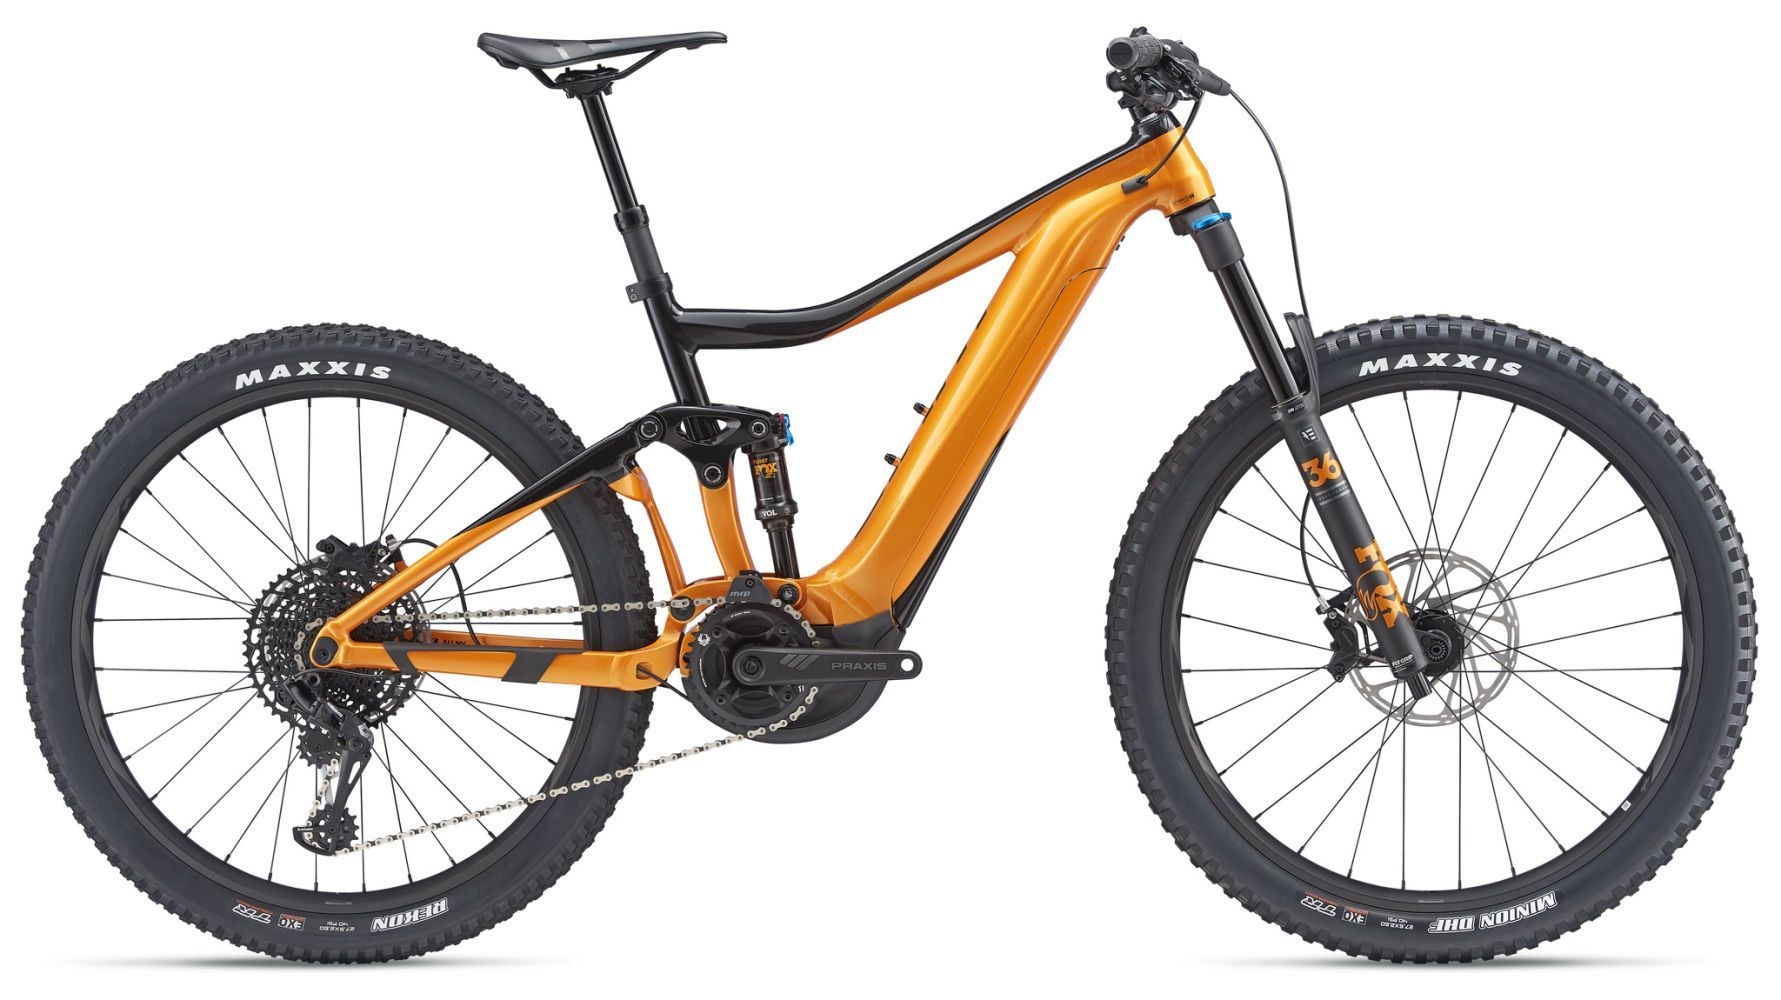 Giant Trance E 1 Pro Electric Mountain Bike 4 299 00